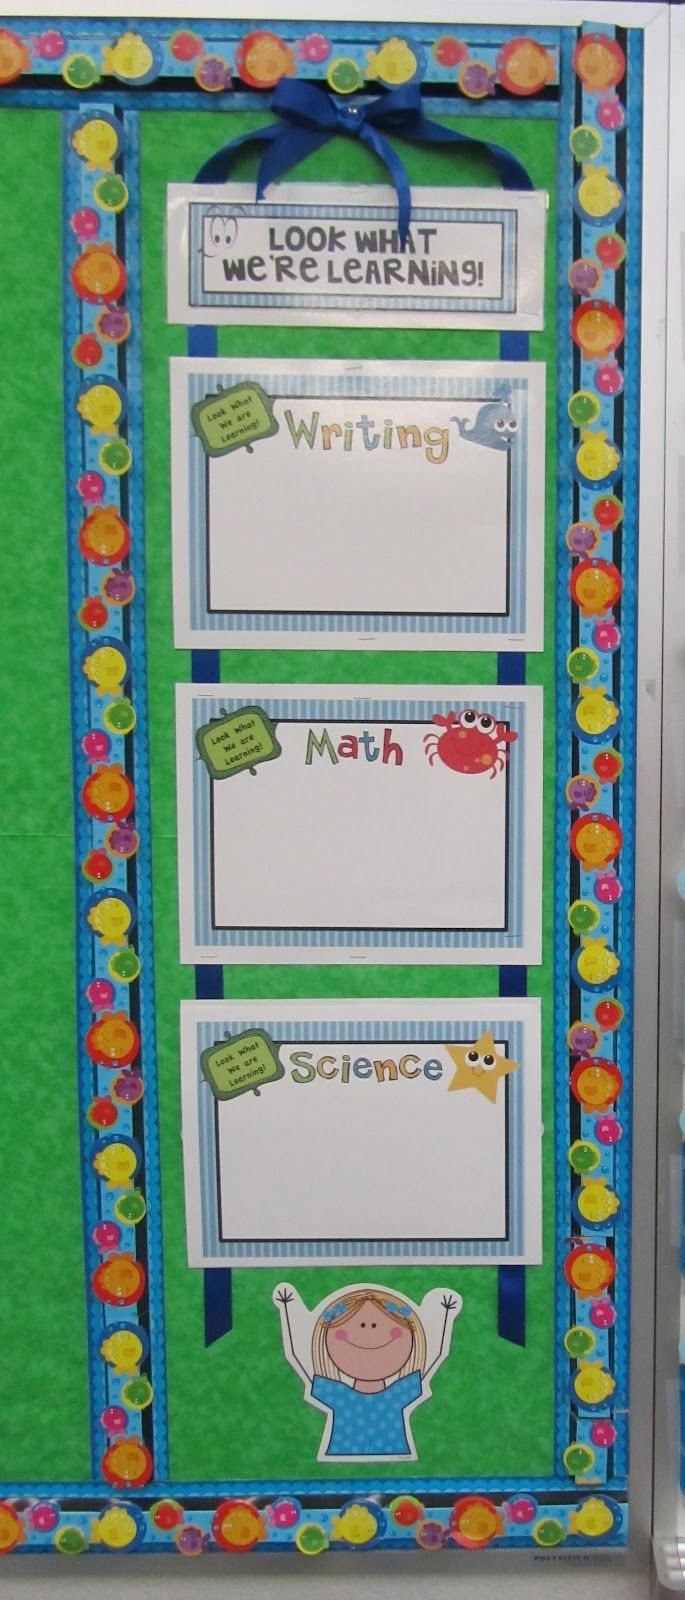 display learning targetsLearning Object, Classroom Decor, Display Learning, Learning Target Display, Bulletin Boards, Cores Posters, Display Object, Common Cores, Learning Targets